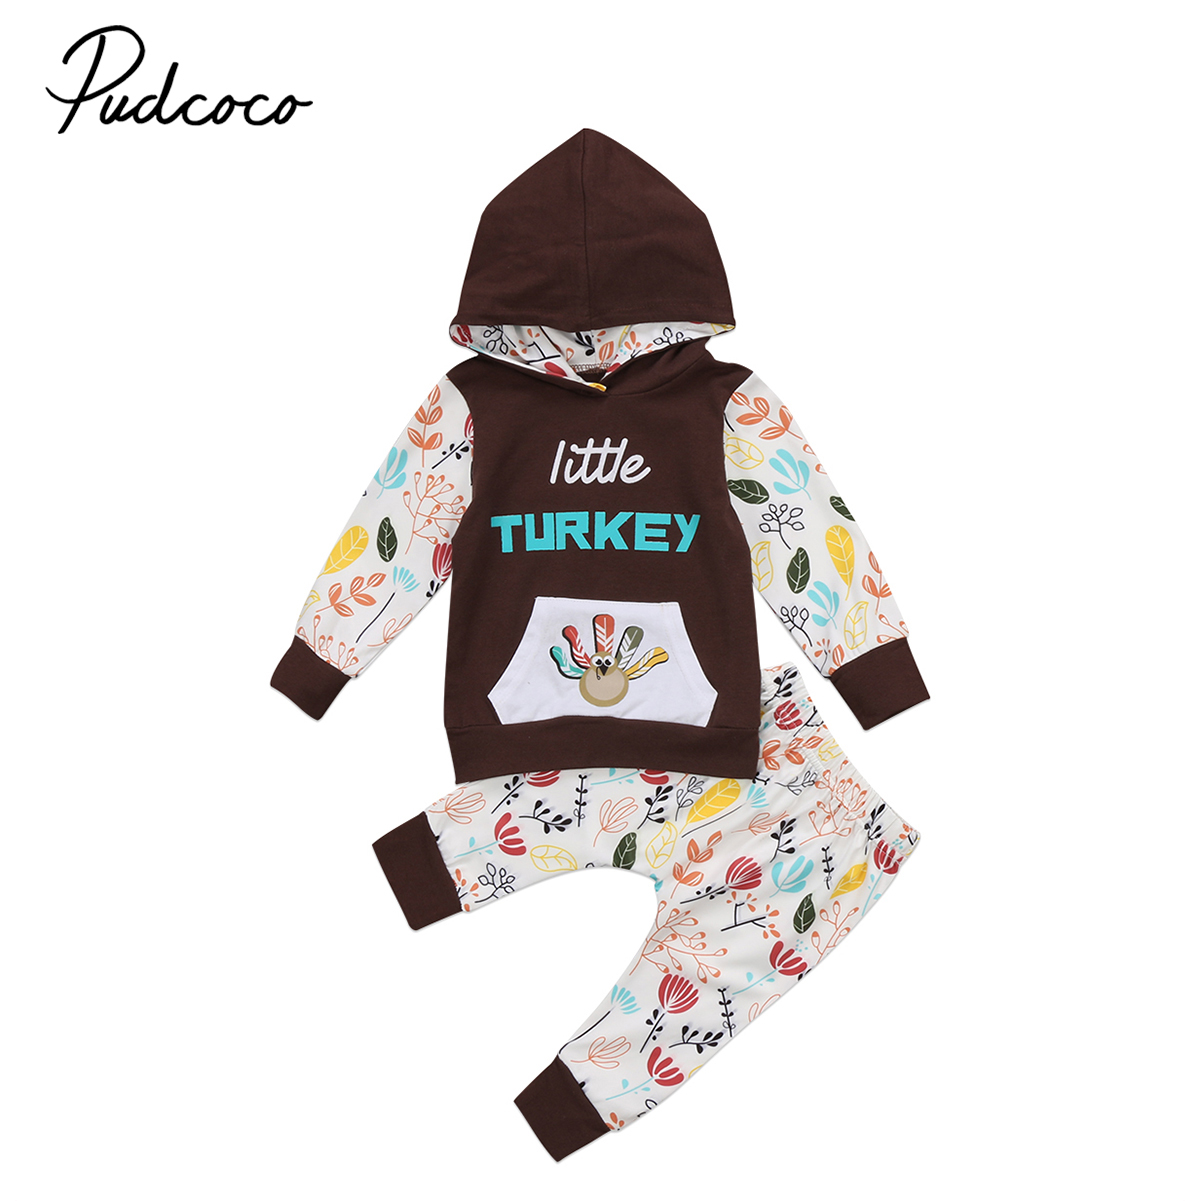 Pudcoco Cute Newborn Baby Kids Girls Clothes Long Sleeve Hooded Hoodie Tops Pants Leggings Baby 2pcs Sets